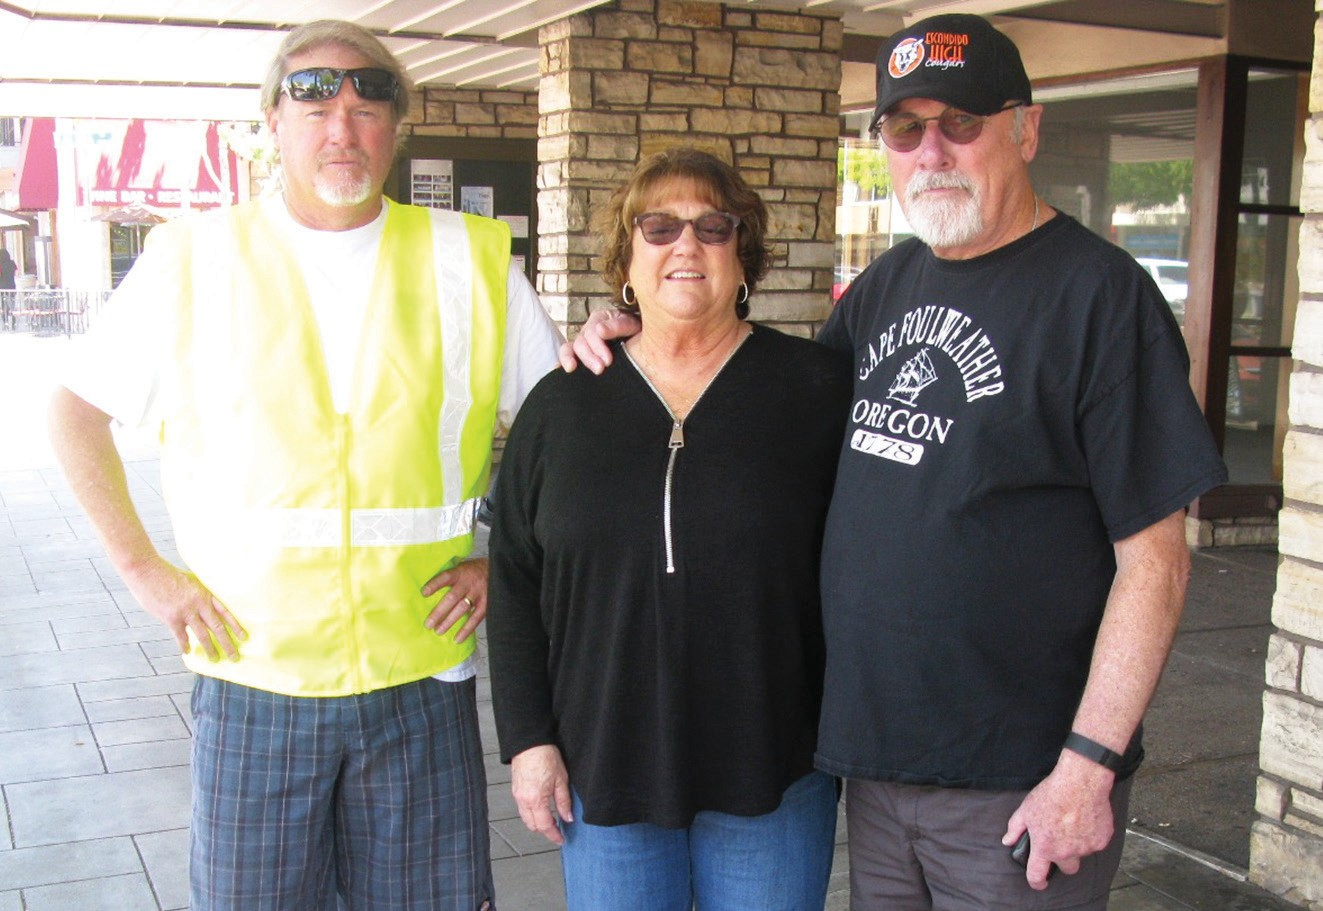 Steve Waldron, left, paused to talk to Escondido High School alums and longtime Escondido residents Chris & Dennis Bahen, who headed south from their home in Oregon for Escondido High School's 55th alumni reunion.